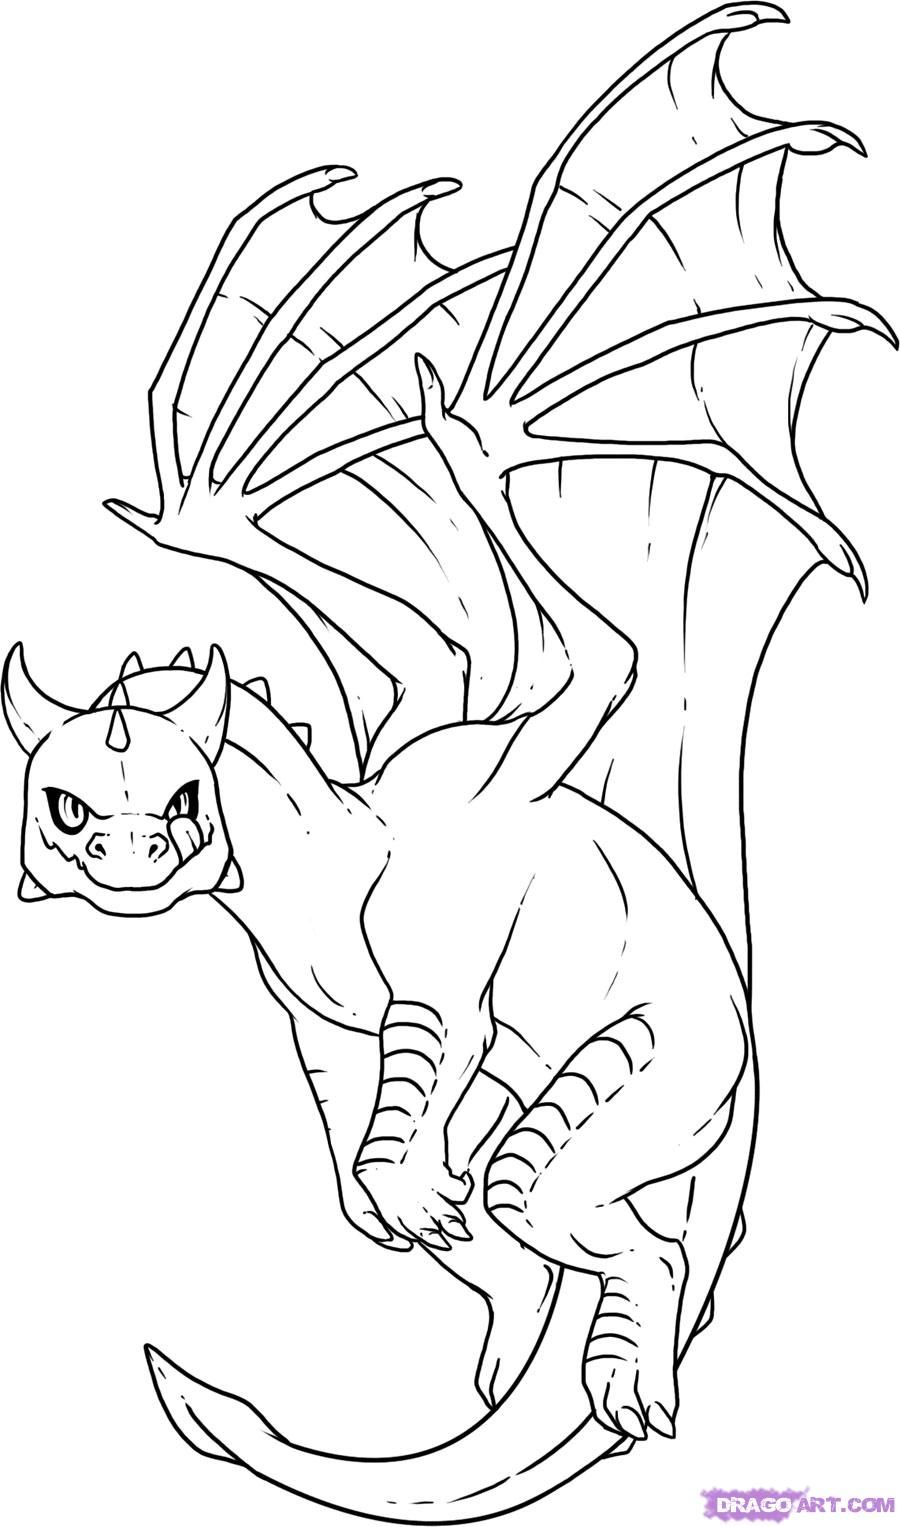 How To Draw Baby Dragon By Dawn With Images Dragon Drawing